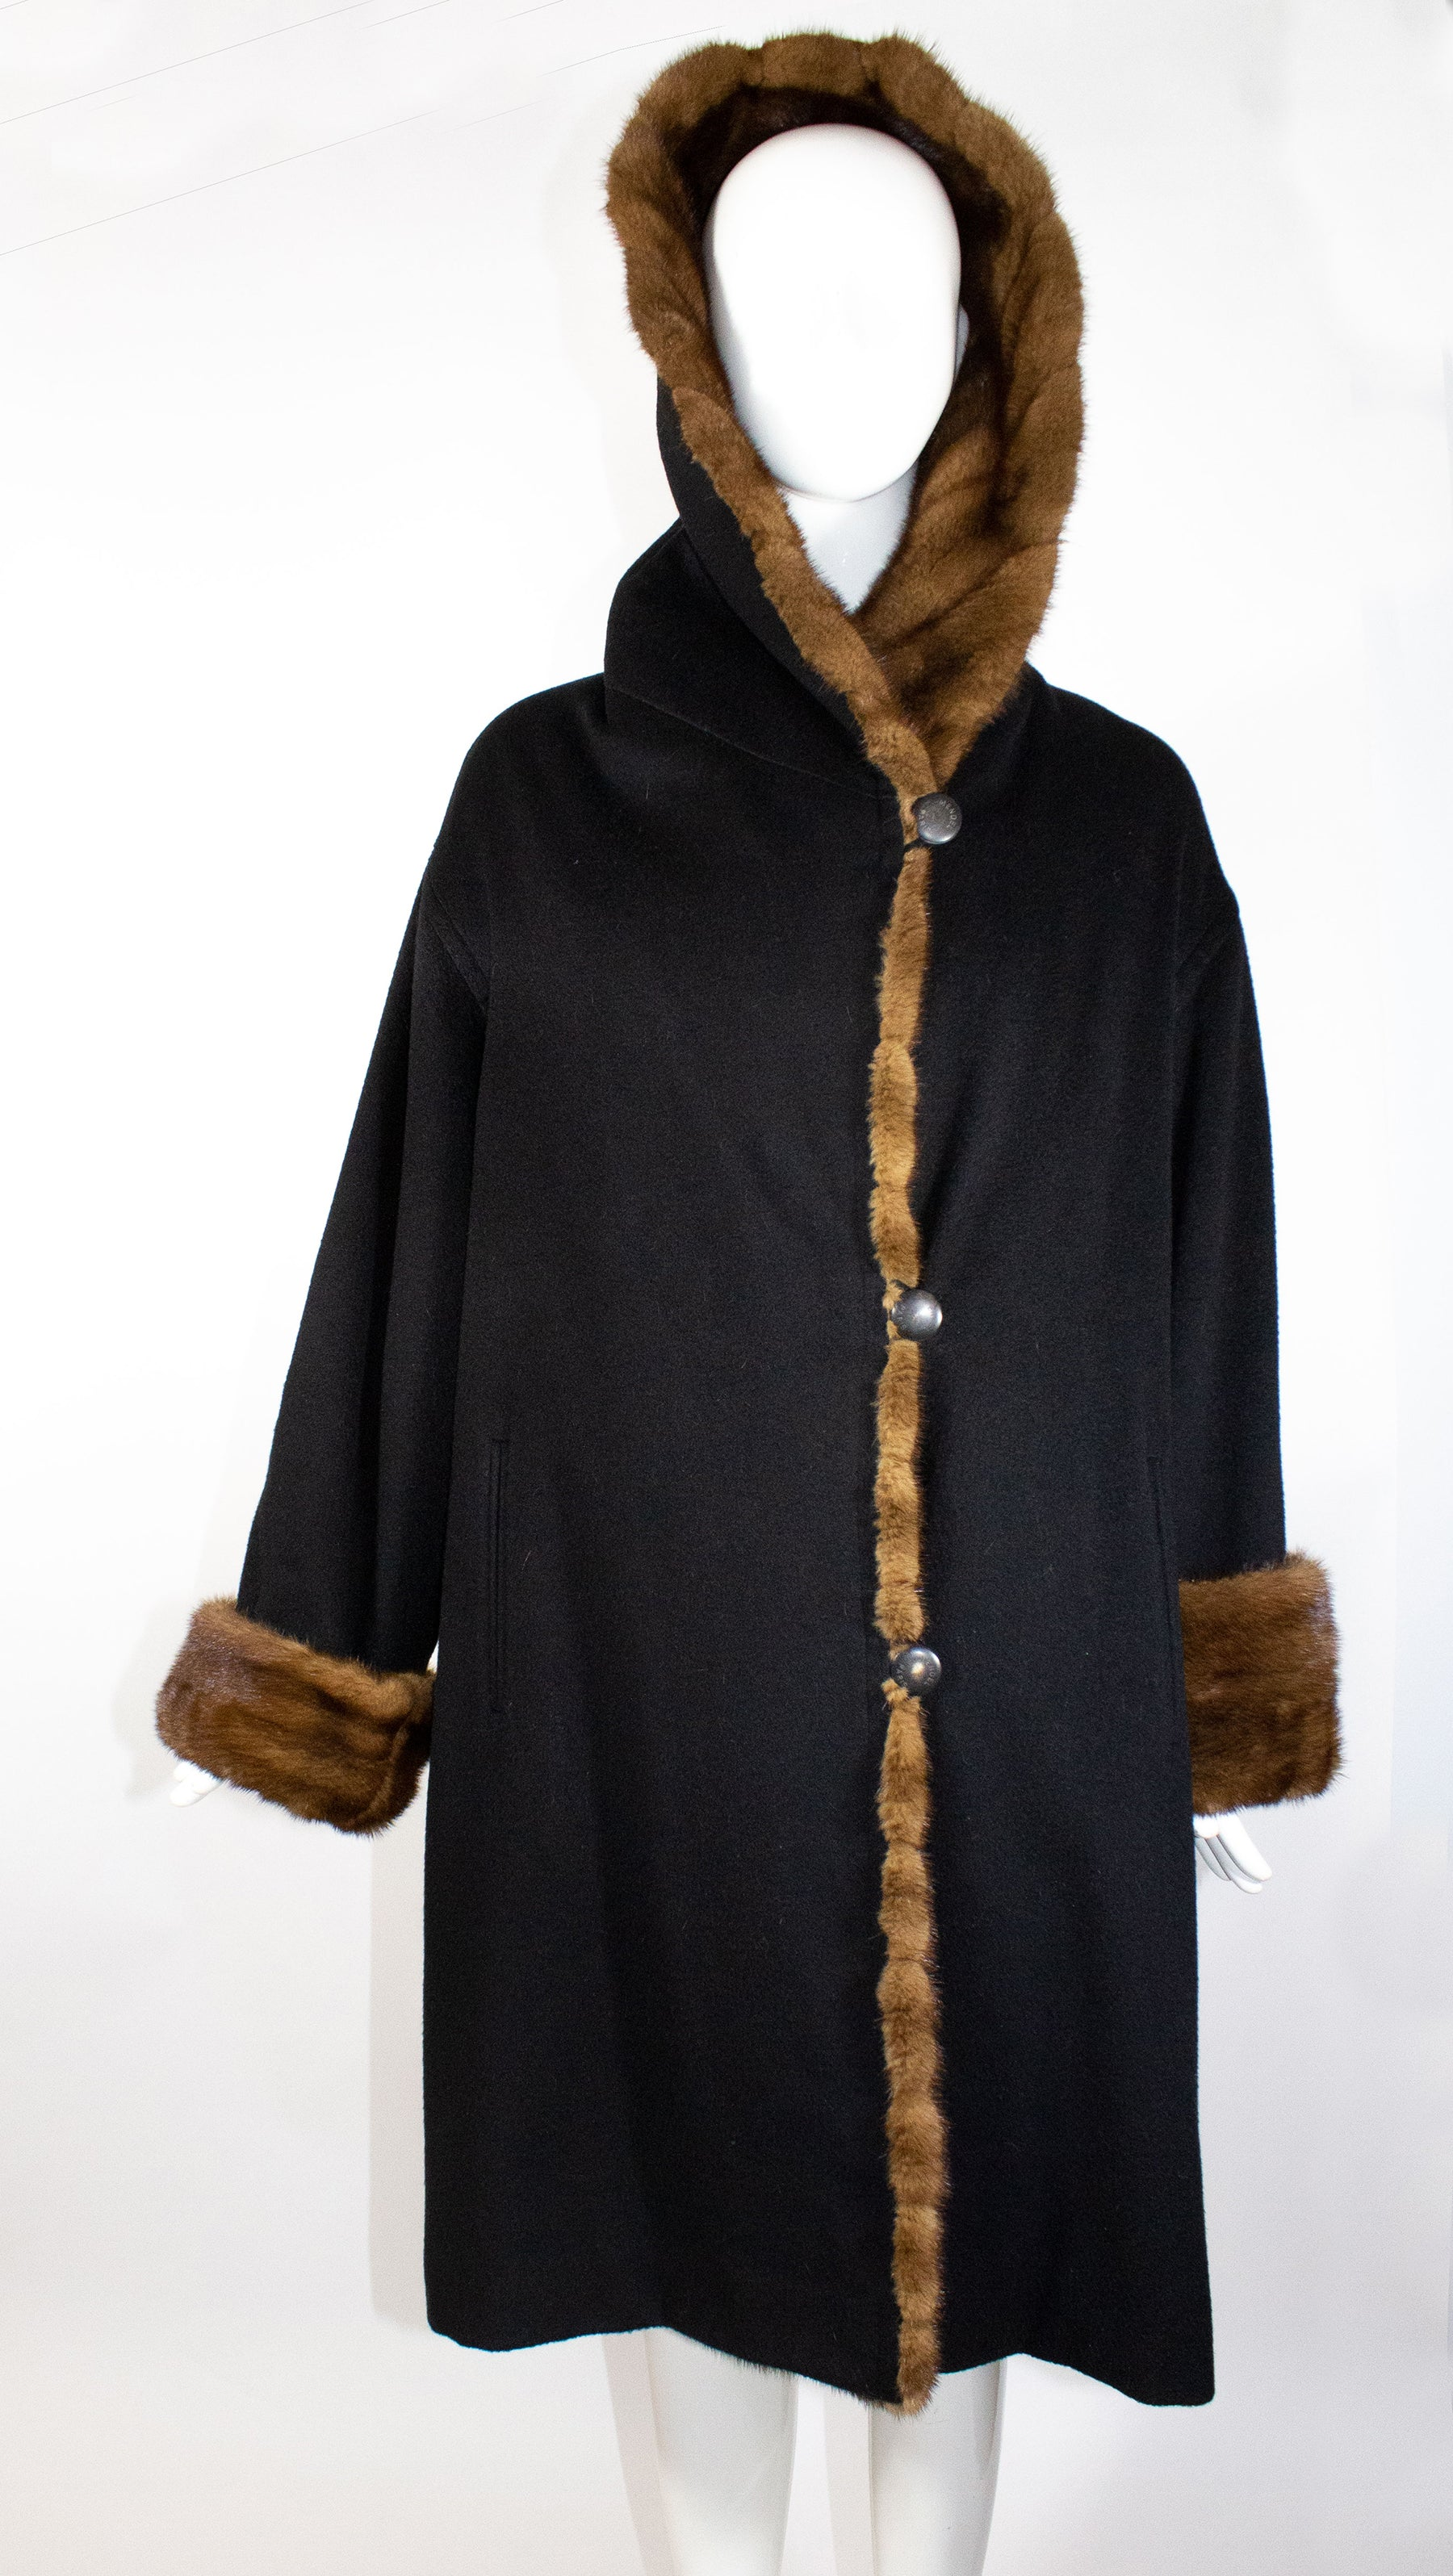 J.MENDEL Black Cashmere Natural Brown Mink Fur Trim Shawl Collar Hooded Coat M L